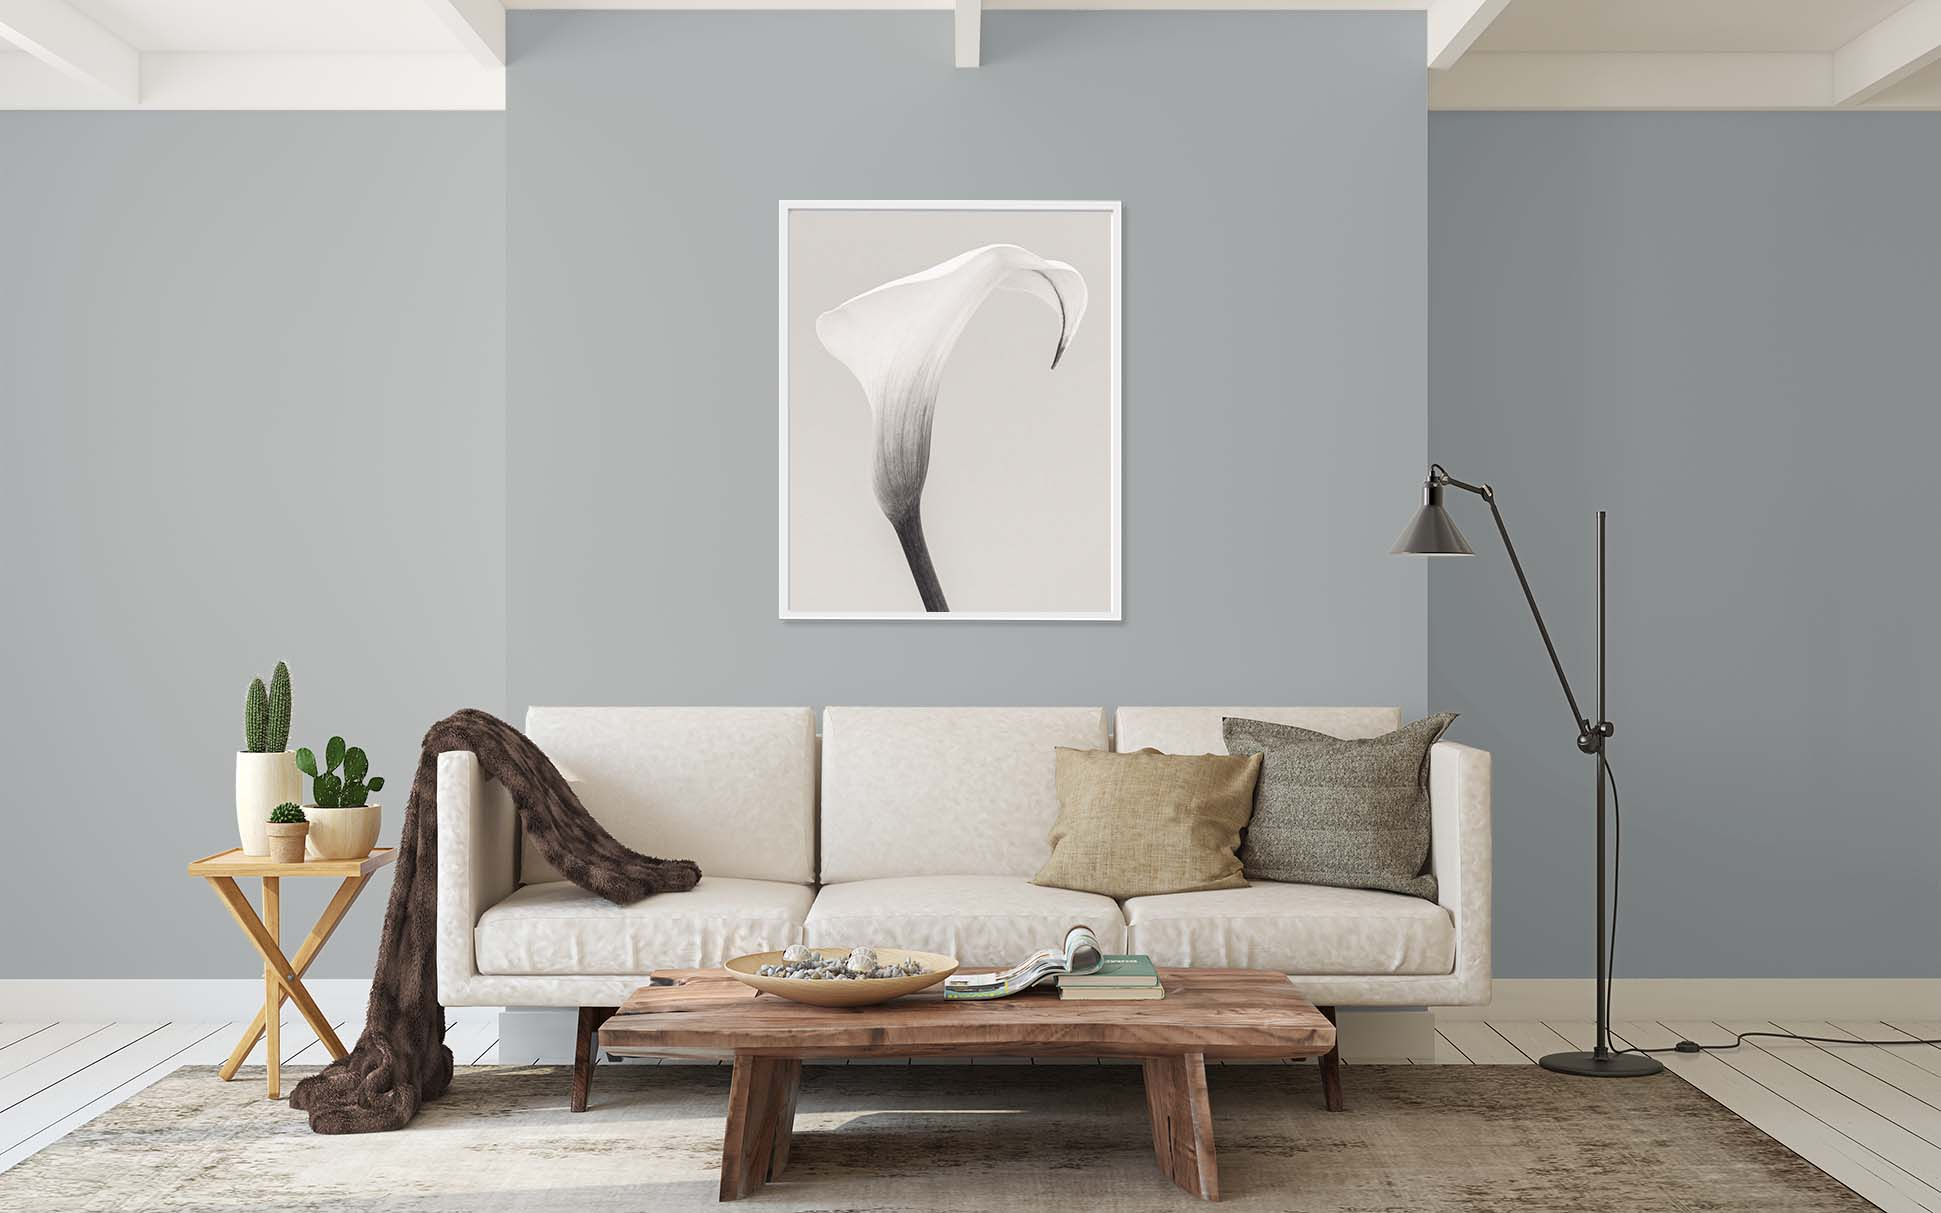 Zantedeschia (Arum Lily) I. Limited edition monochrome print of an Arum Lily by fine art photographer Paul Coghlin. These prints are part of a series of floral prints called 'Botanic'